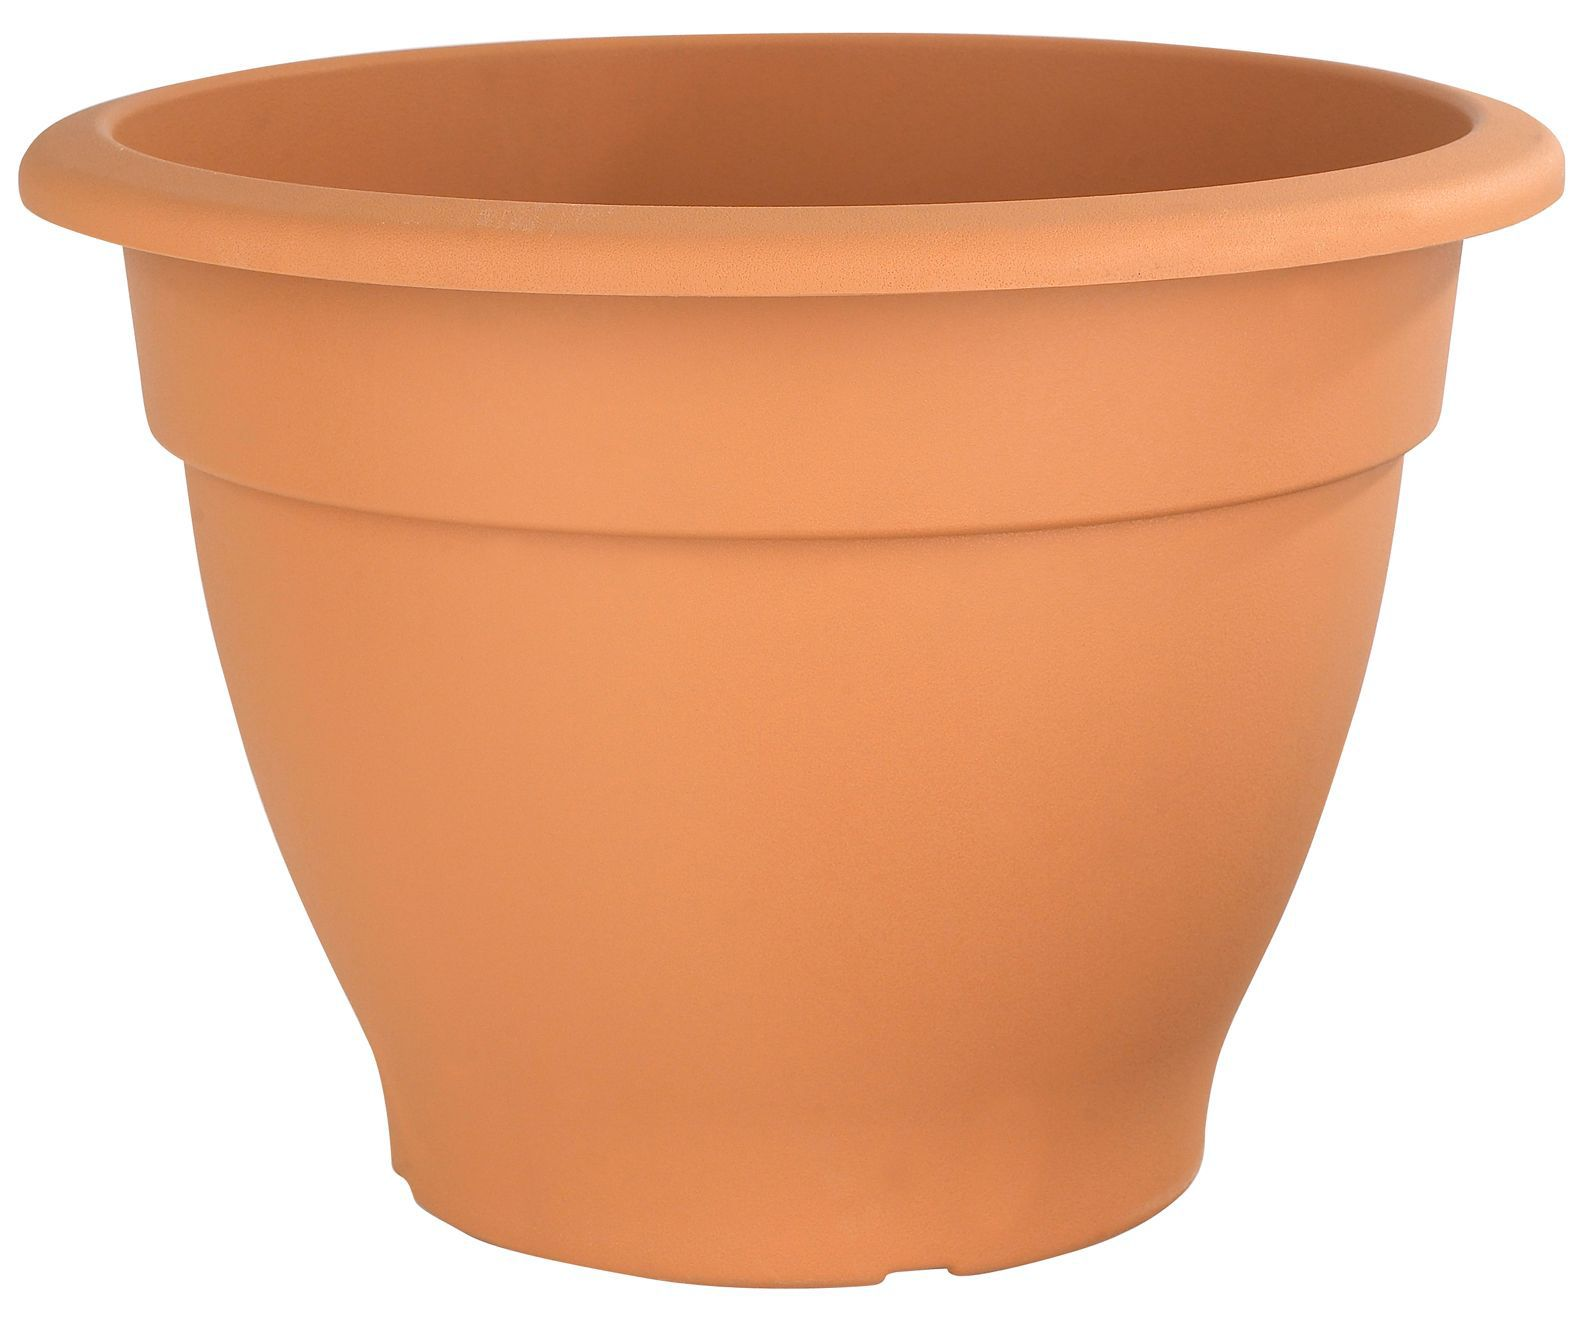 Round Plastic Terracotta Bell Pot H 400mm Dia 550mm